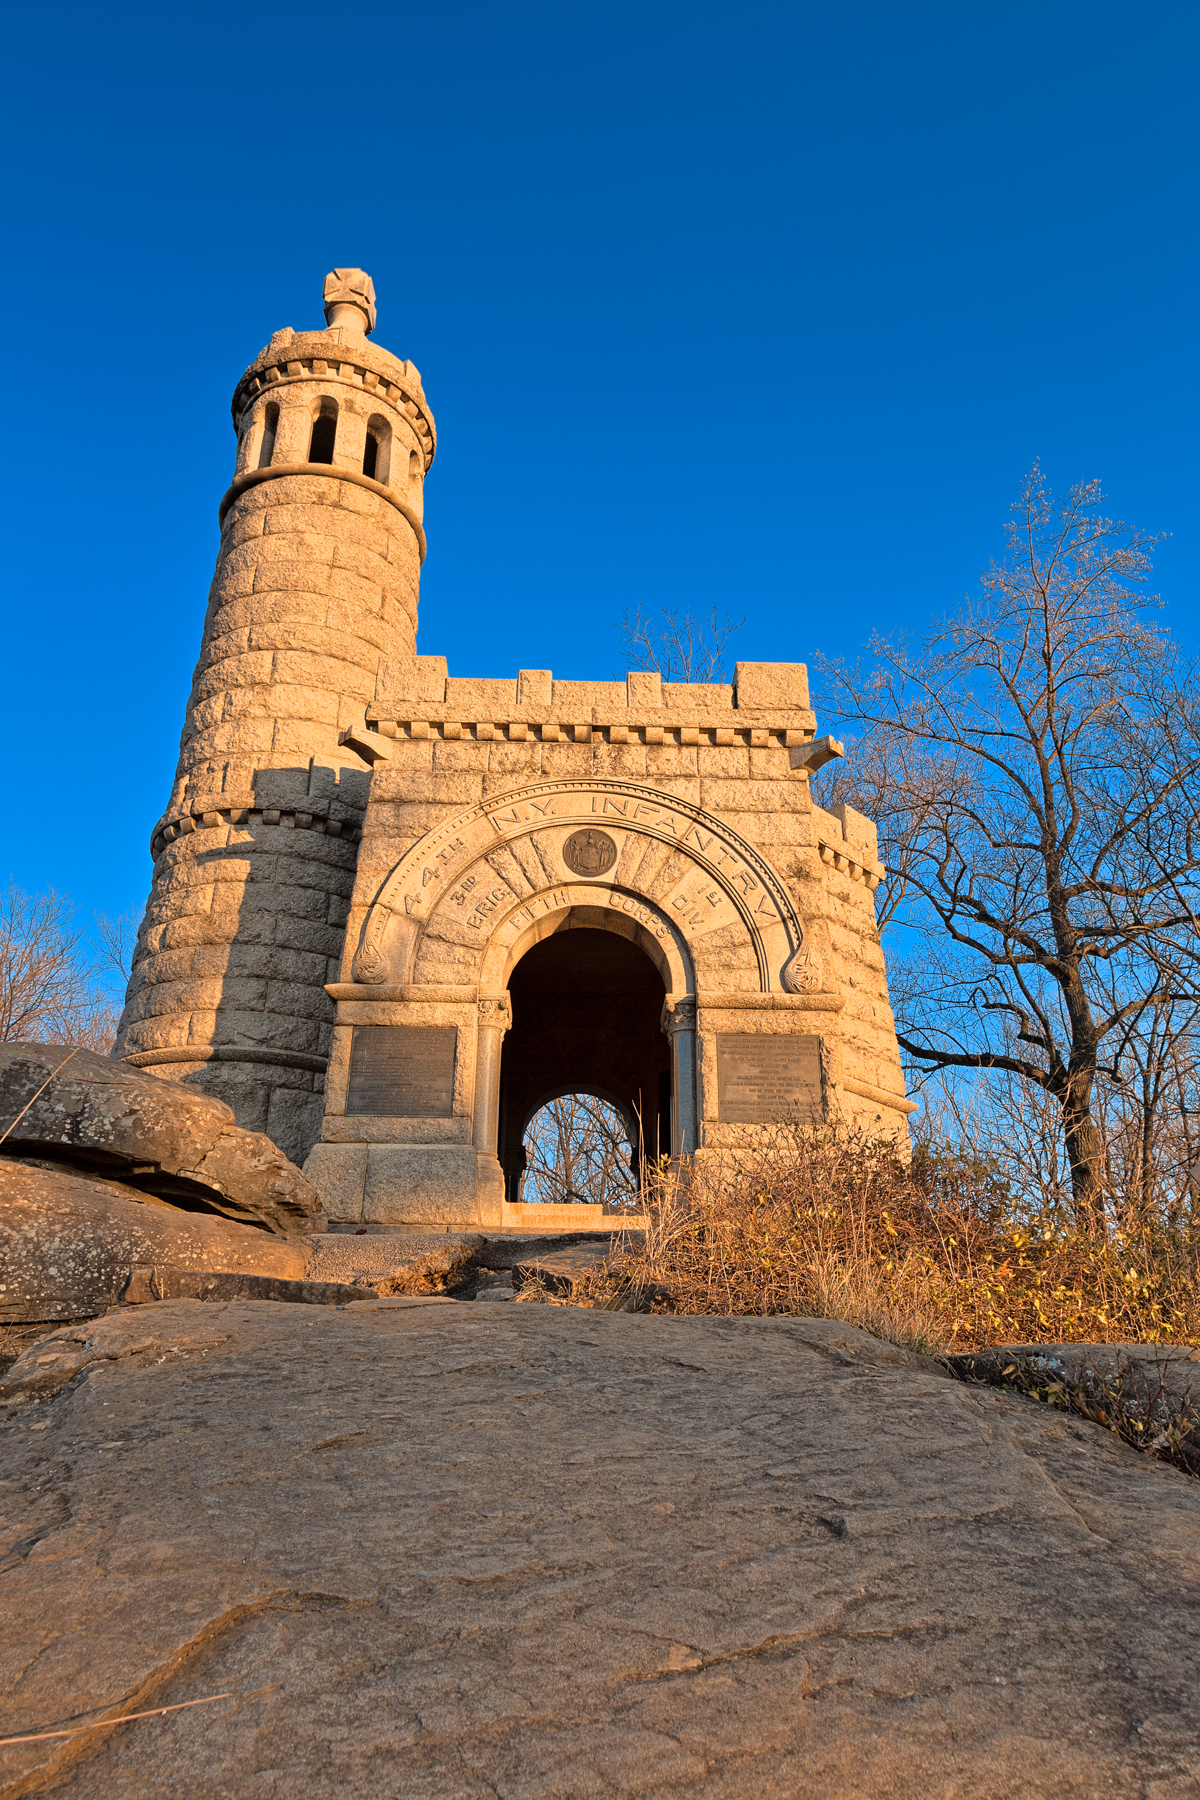 Gettysburg castle monument - hdr photo